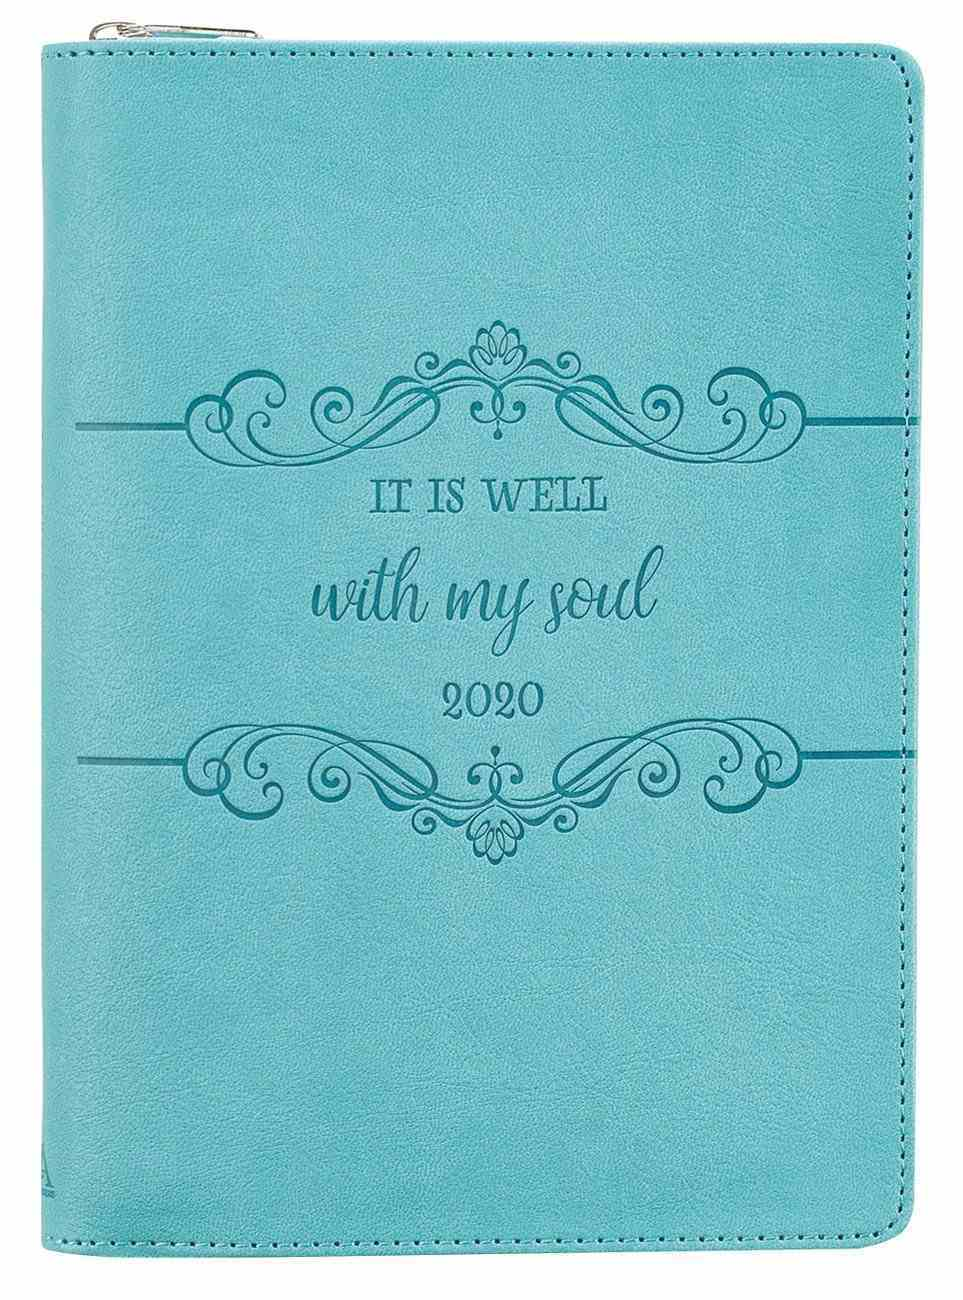 2020 Executive 12-Month Diary/Planner: It is Well With My Soul, Blue/Embossed Design Imitation Leather